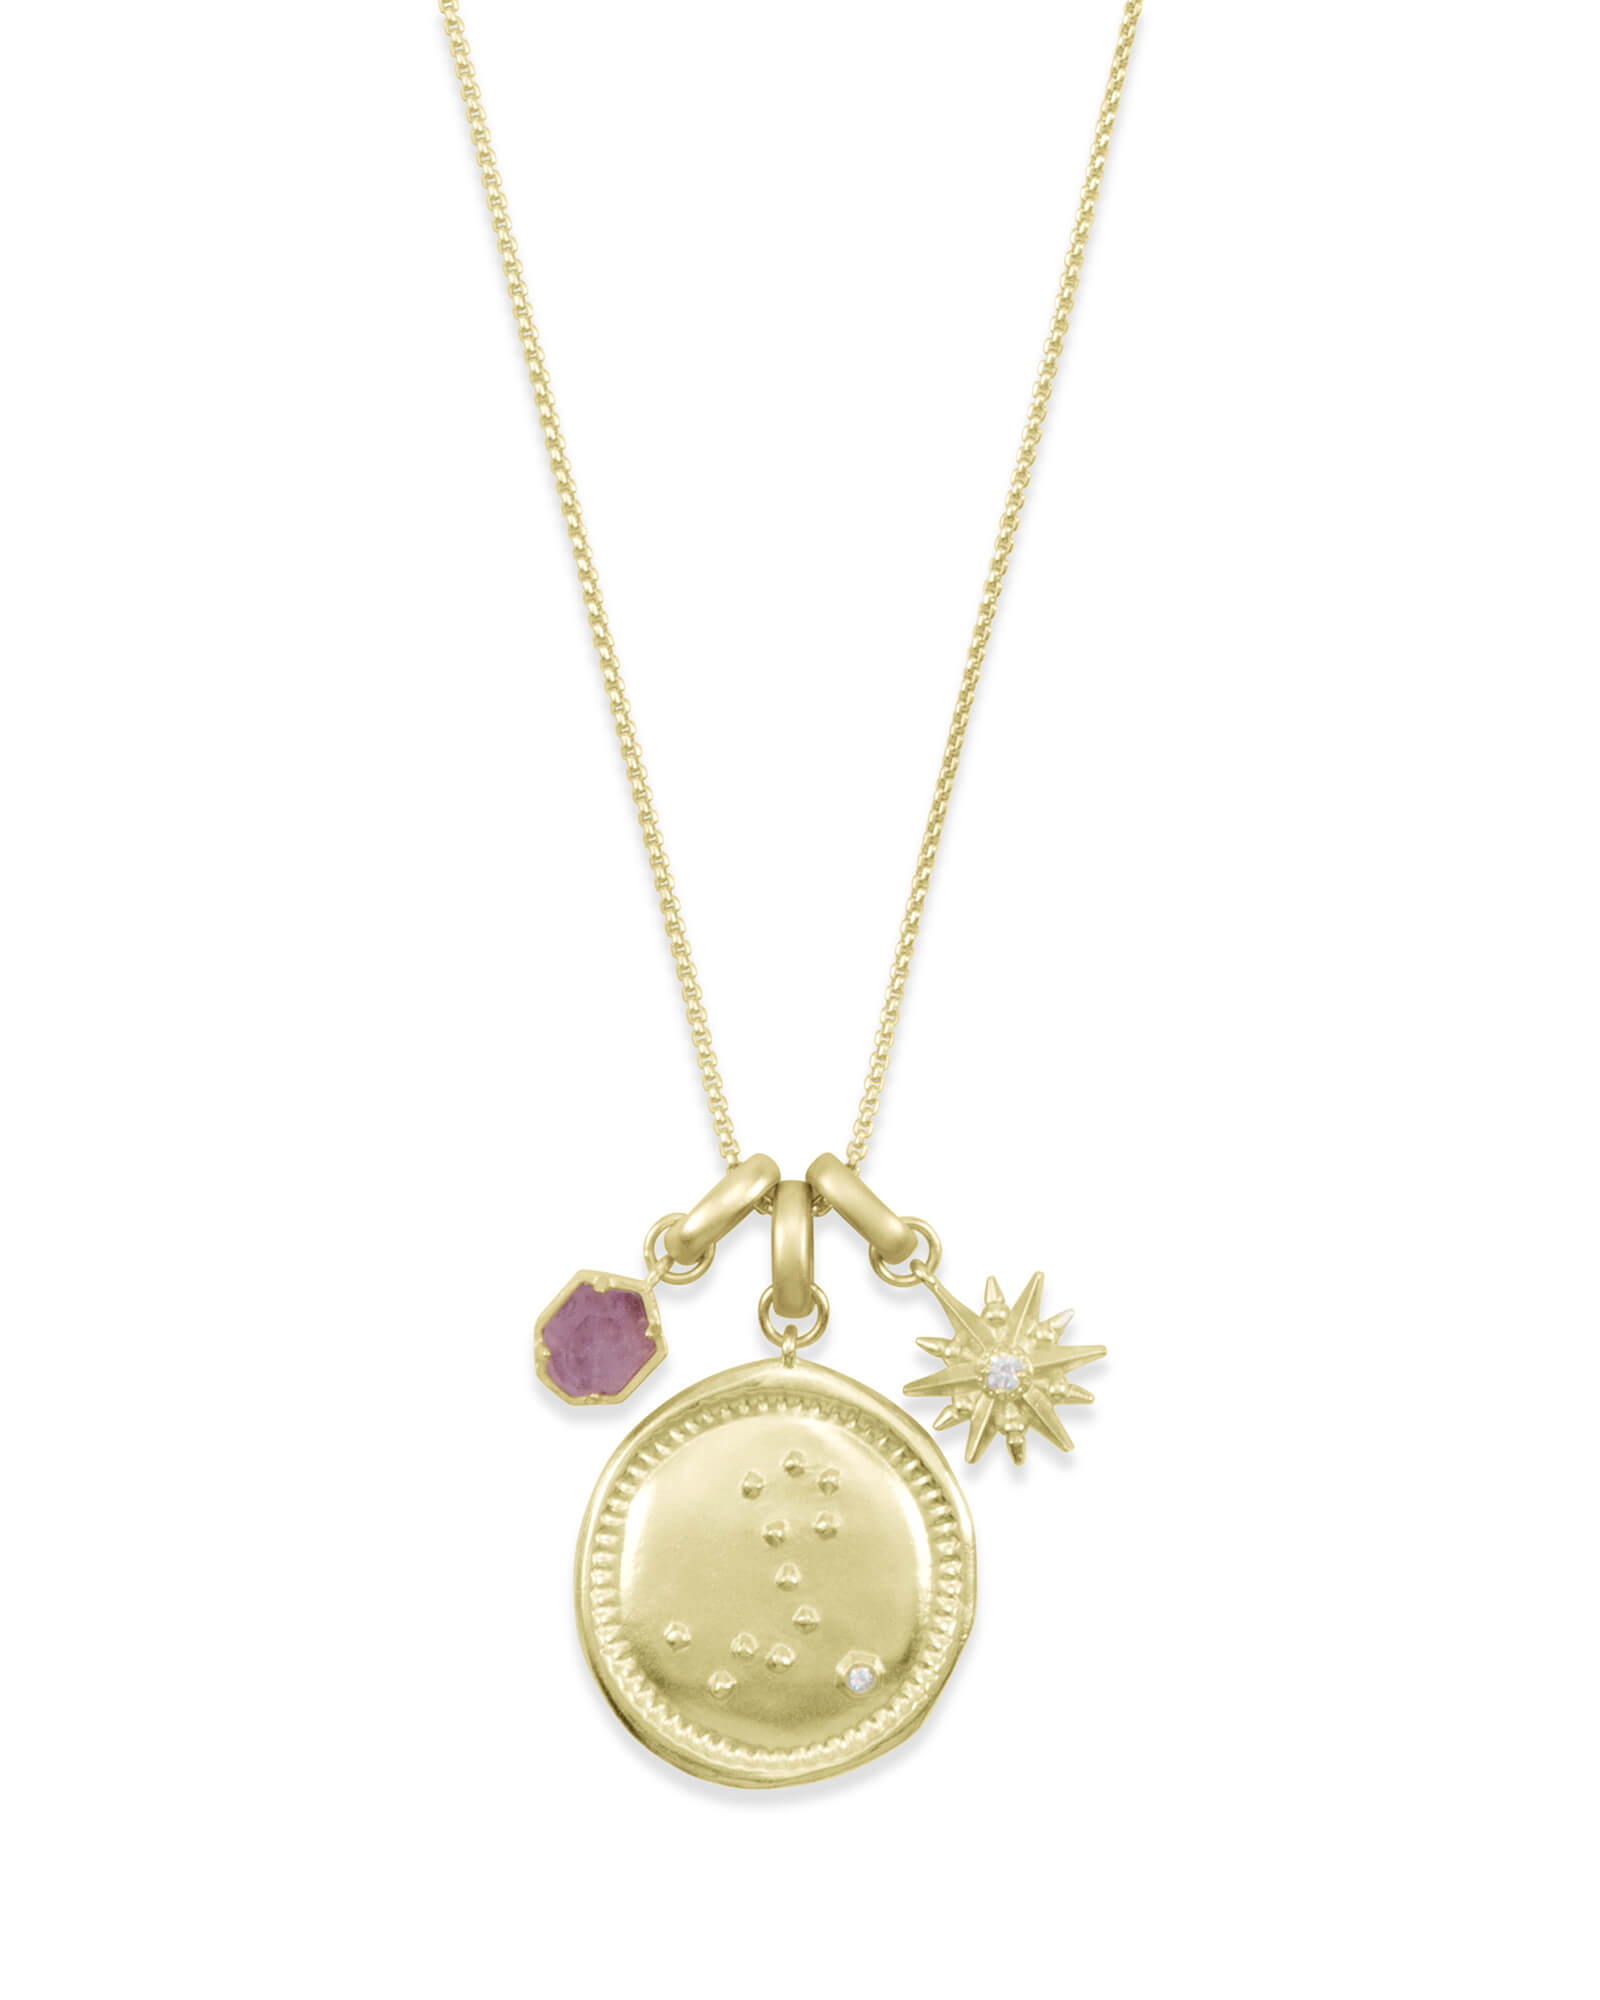 February Pisces Charm Necklace Set in Gold